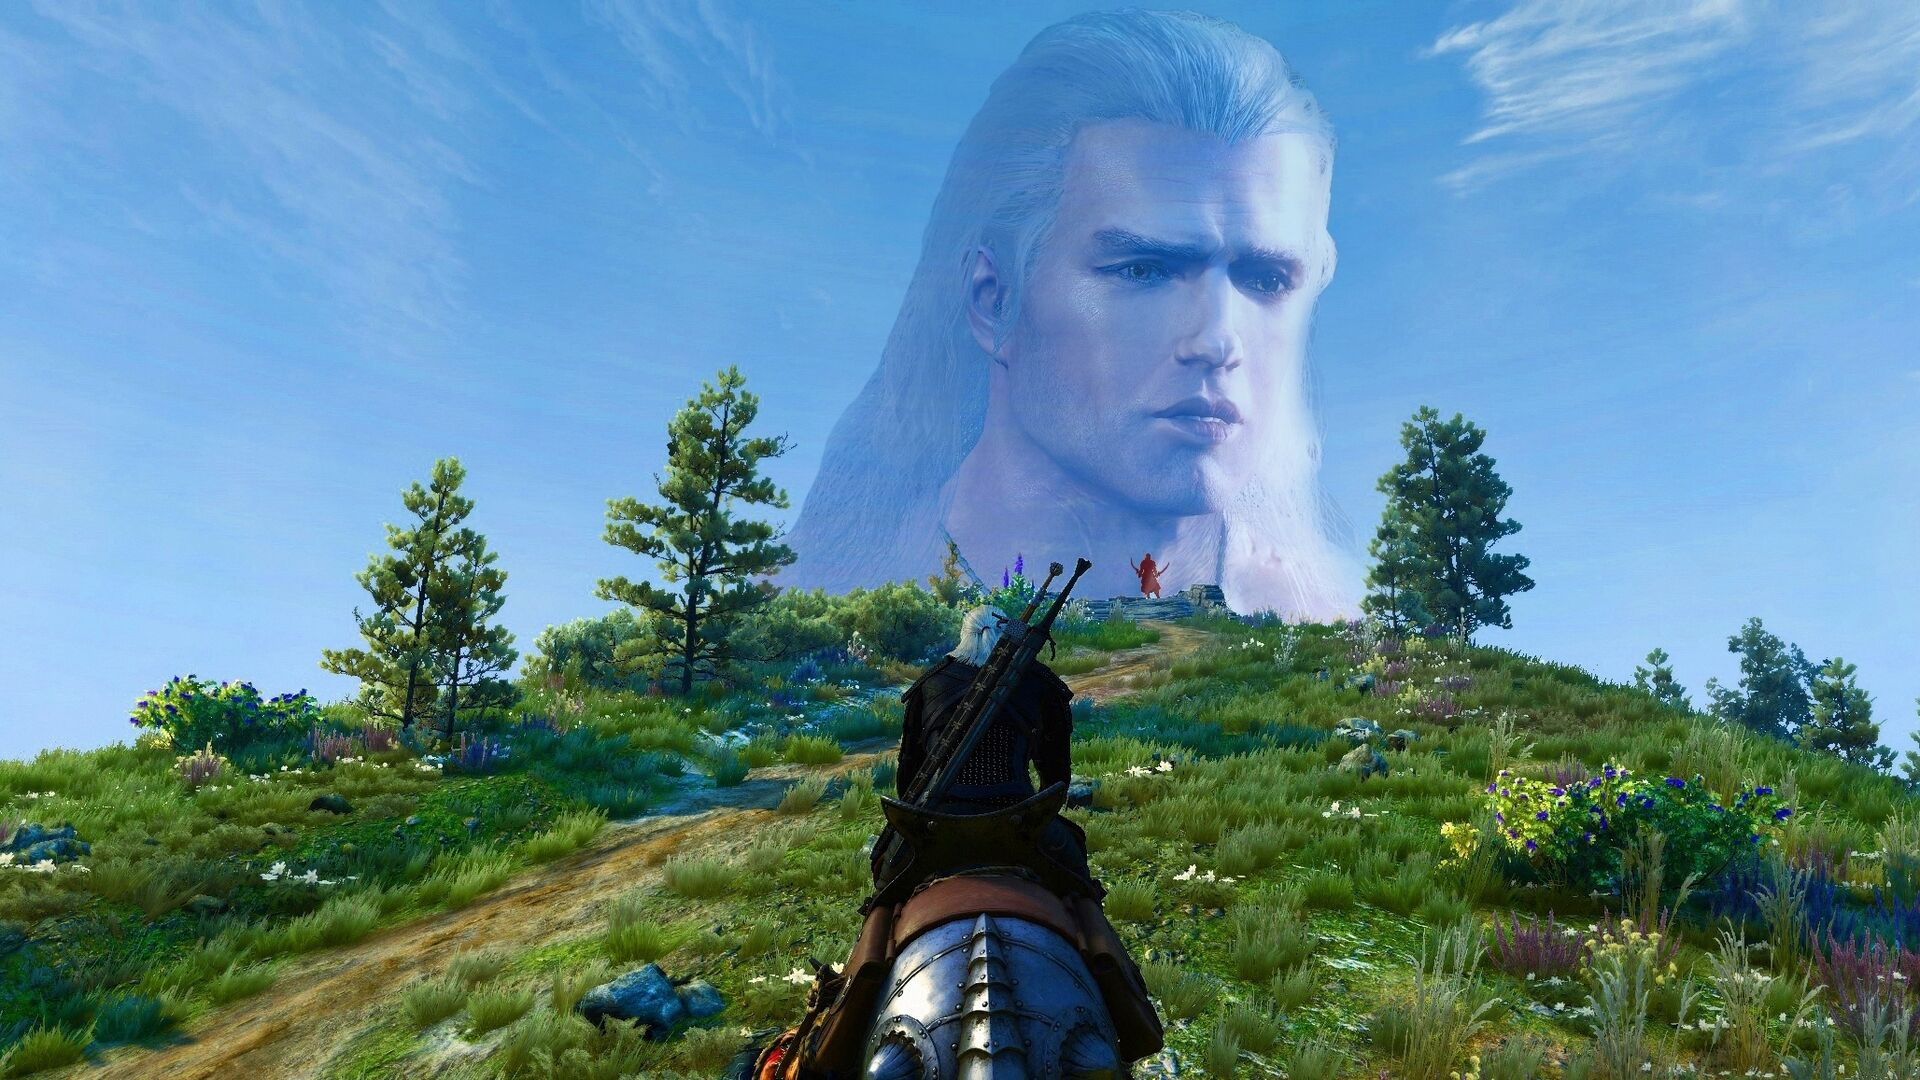 A new mod for The Witcher 3 sticks Henry Cavill's face onto